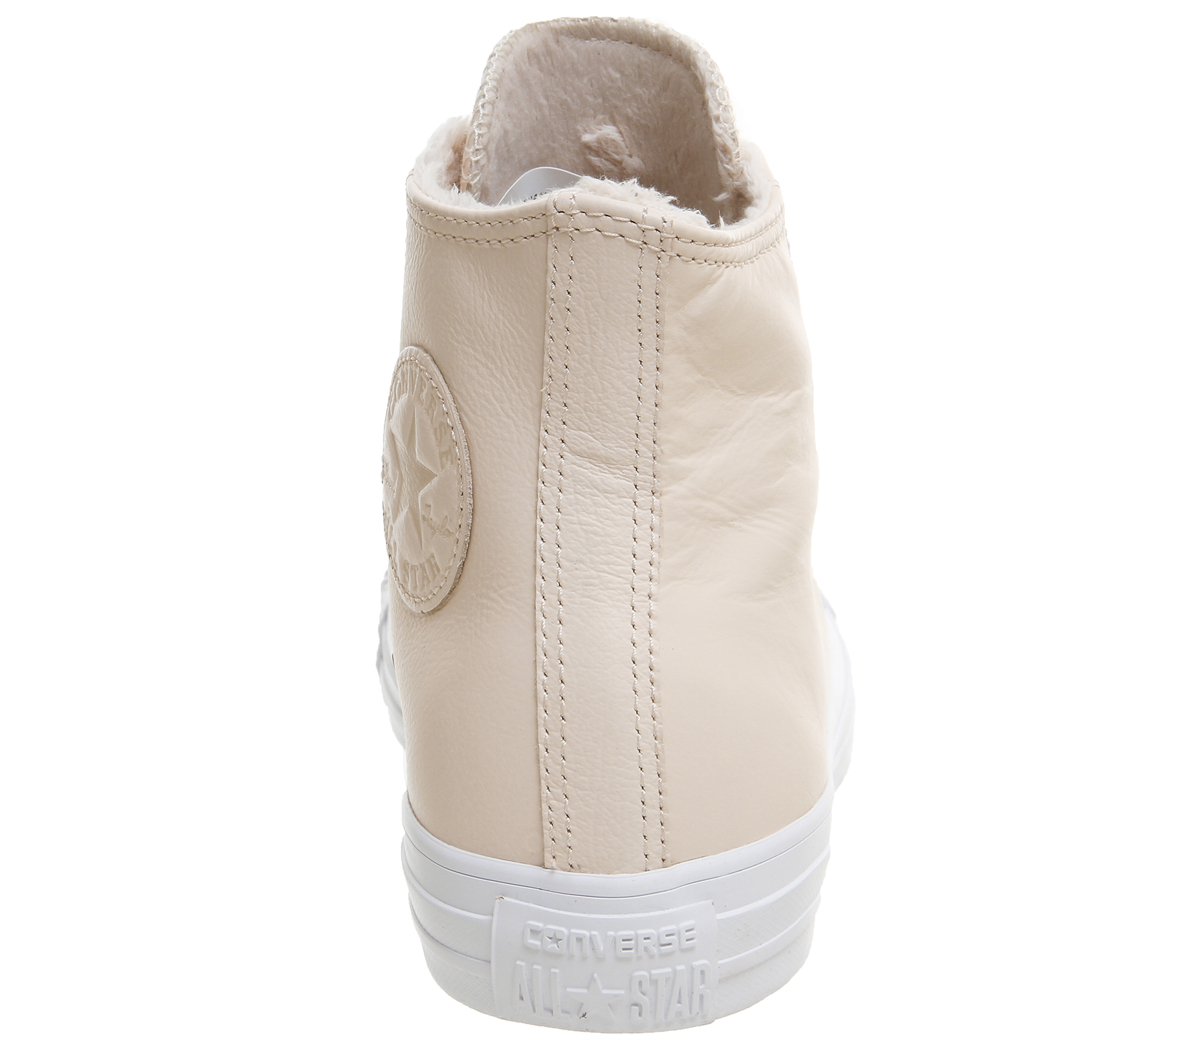 5d8038b74072 Sentinel Womens Converse All Star Hi Leather Pastel Rose Tan Fur Trainers  Shoes